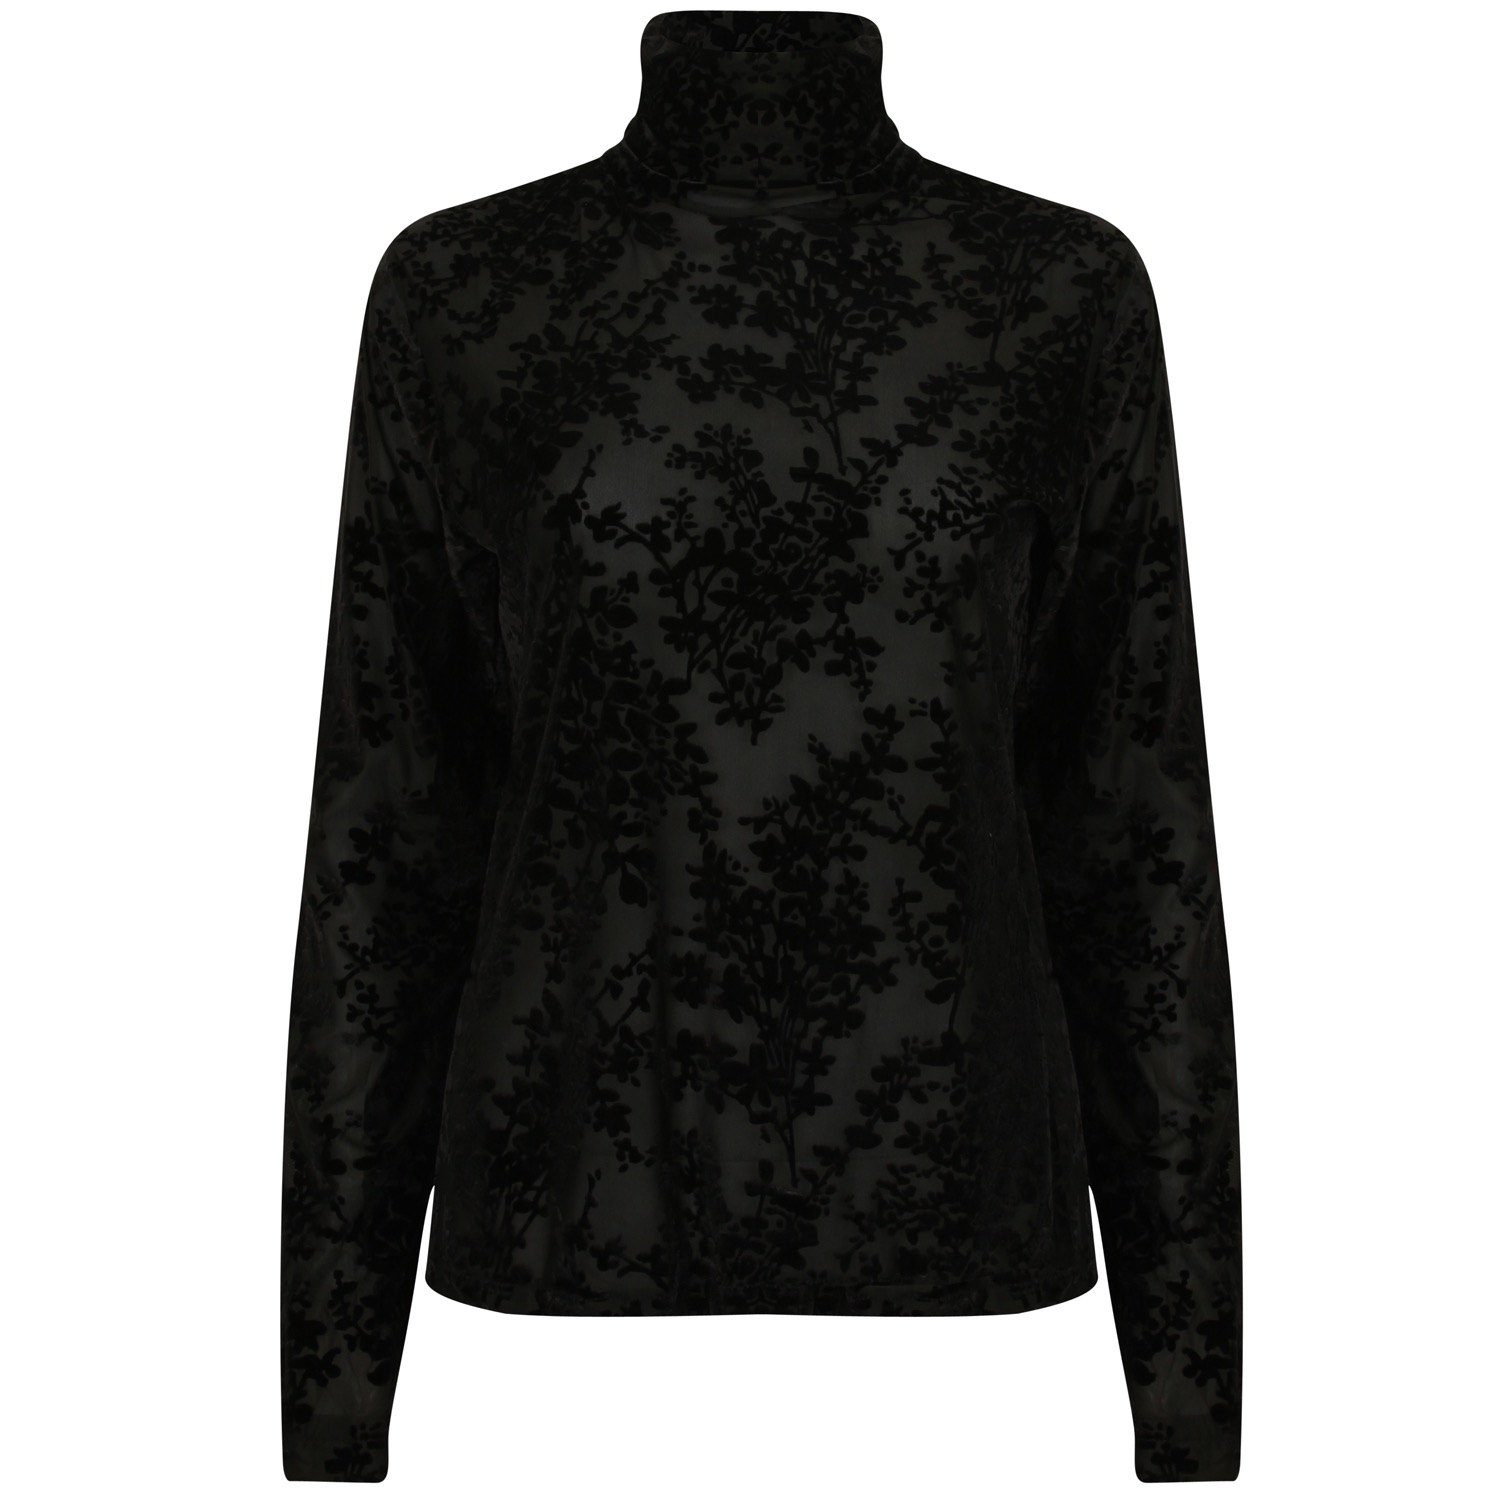 The Black Lace Roll Neck